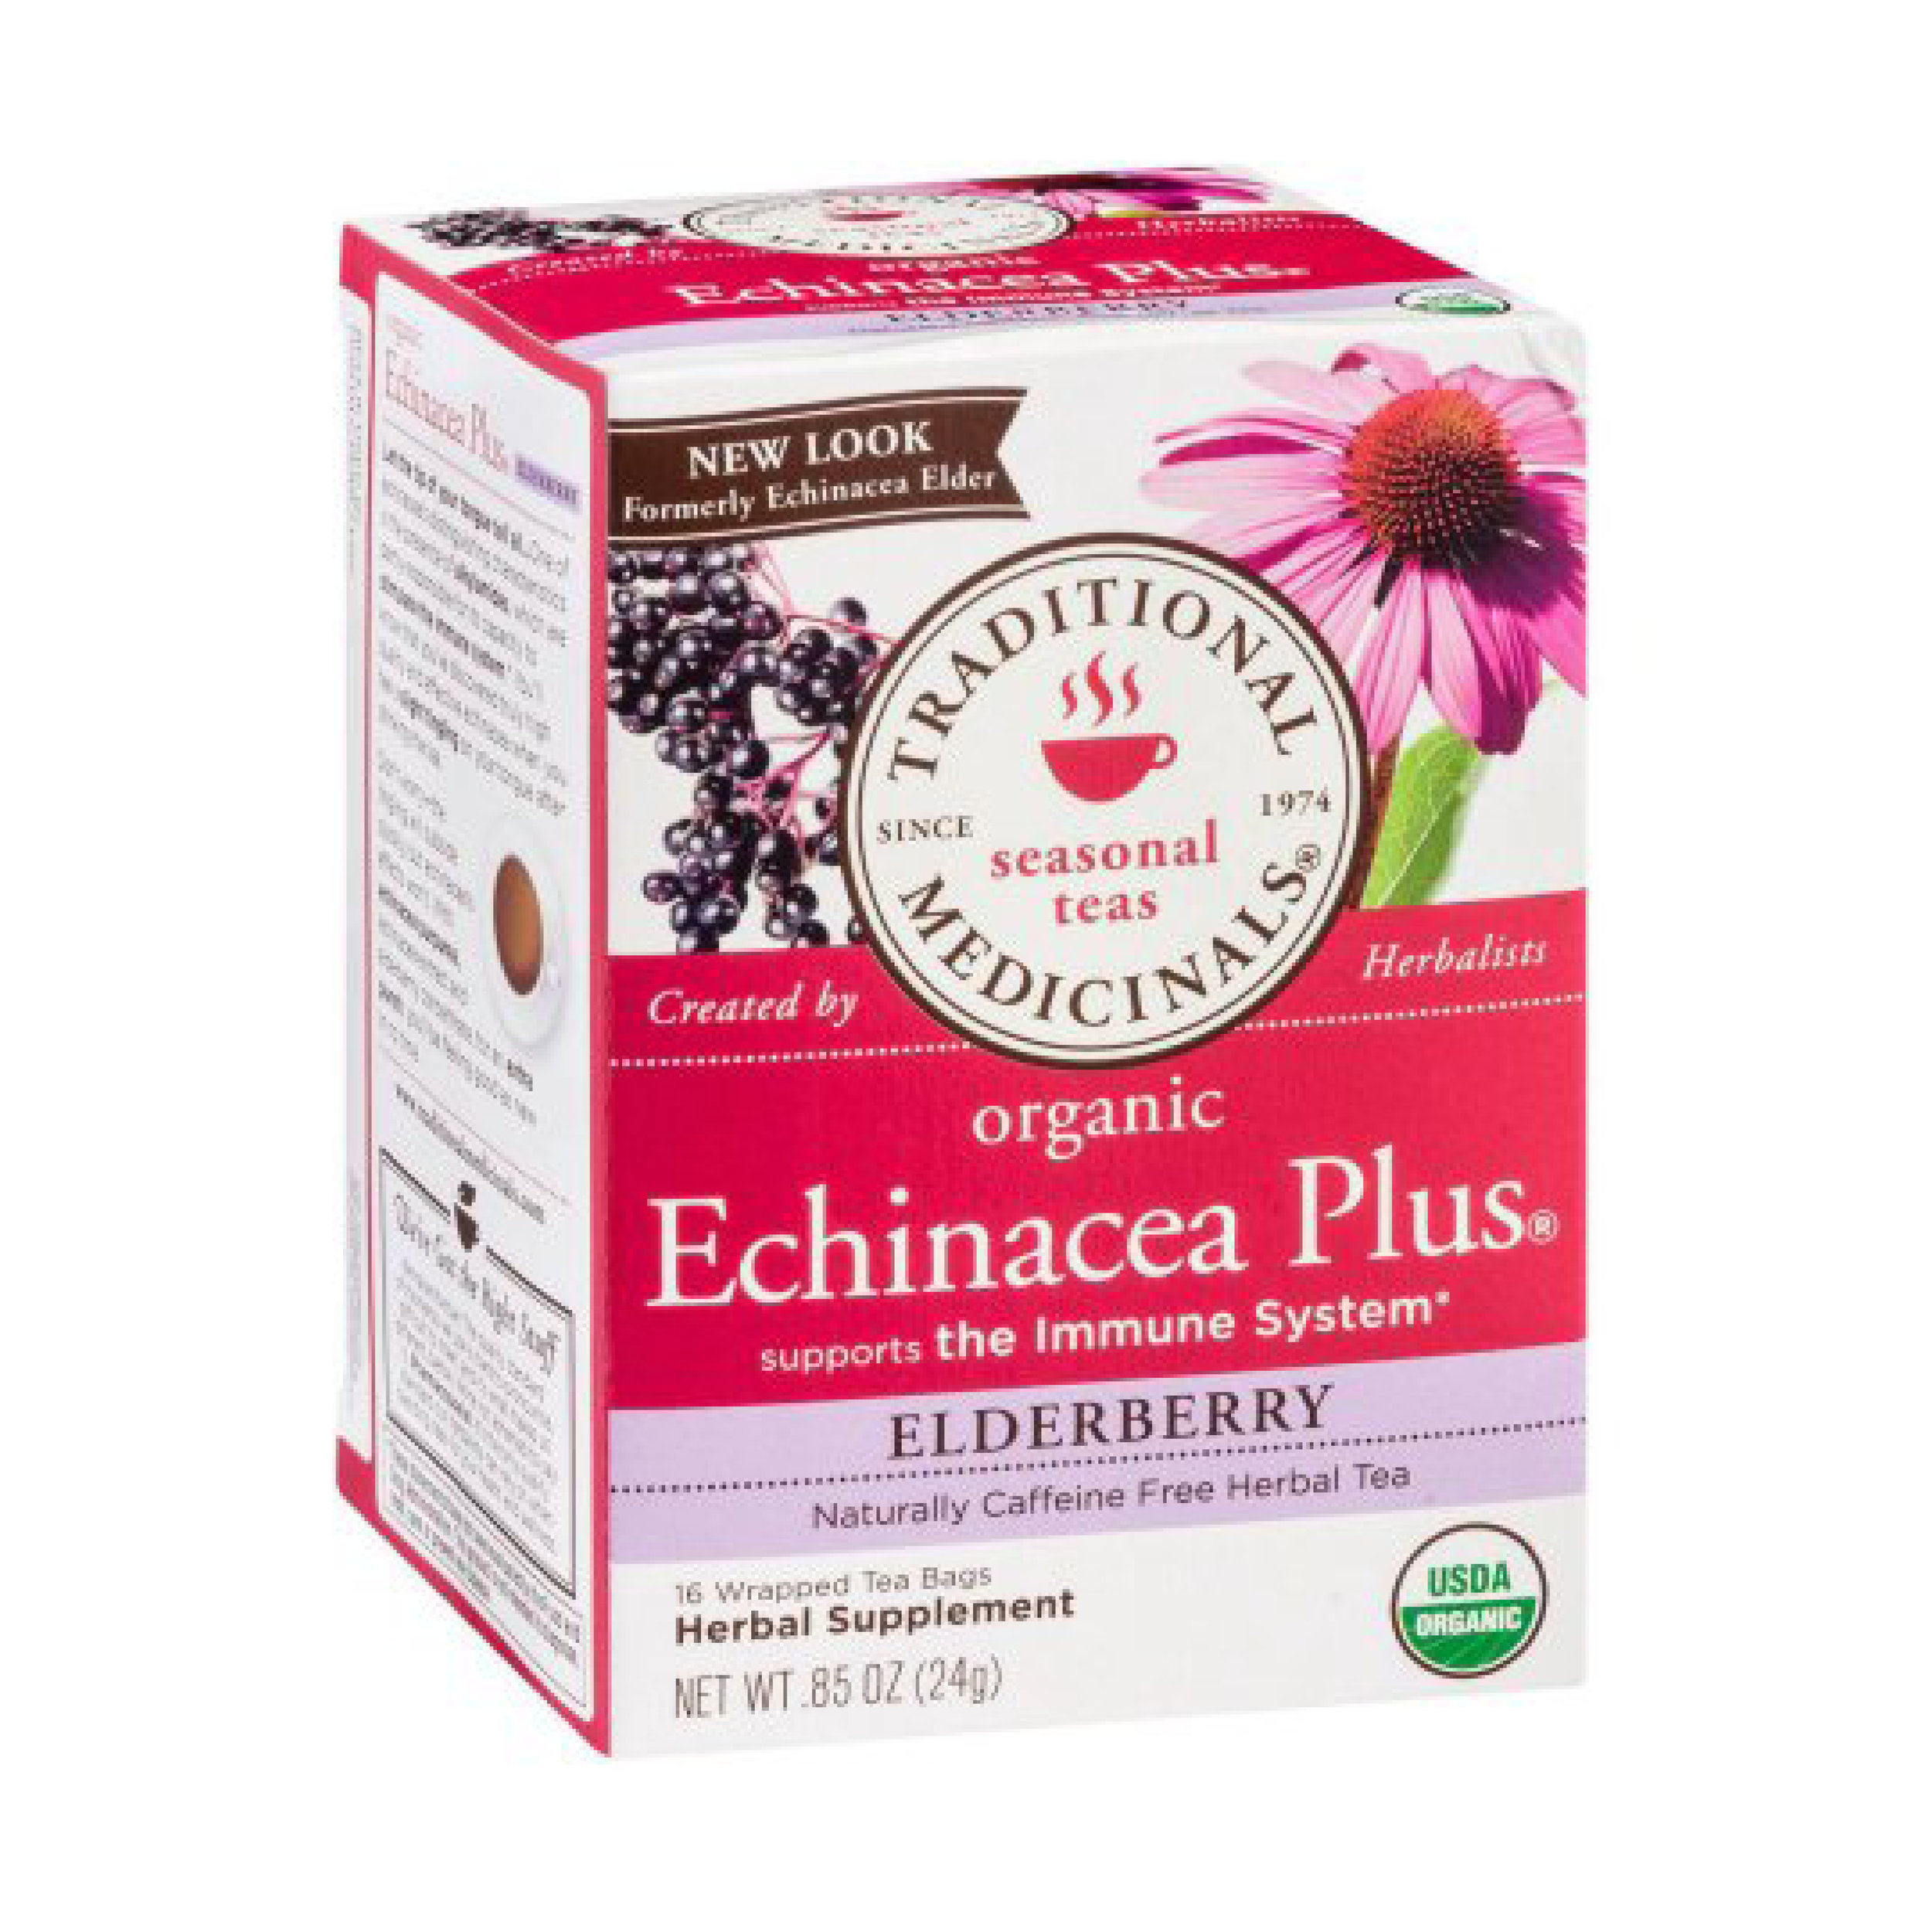 2. Drink Echinacea Tea - This herb can shorten the length of a cold. To amp up the benefits, add a teaspoon of manuka honey which has powerful antimicrobial properties.